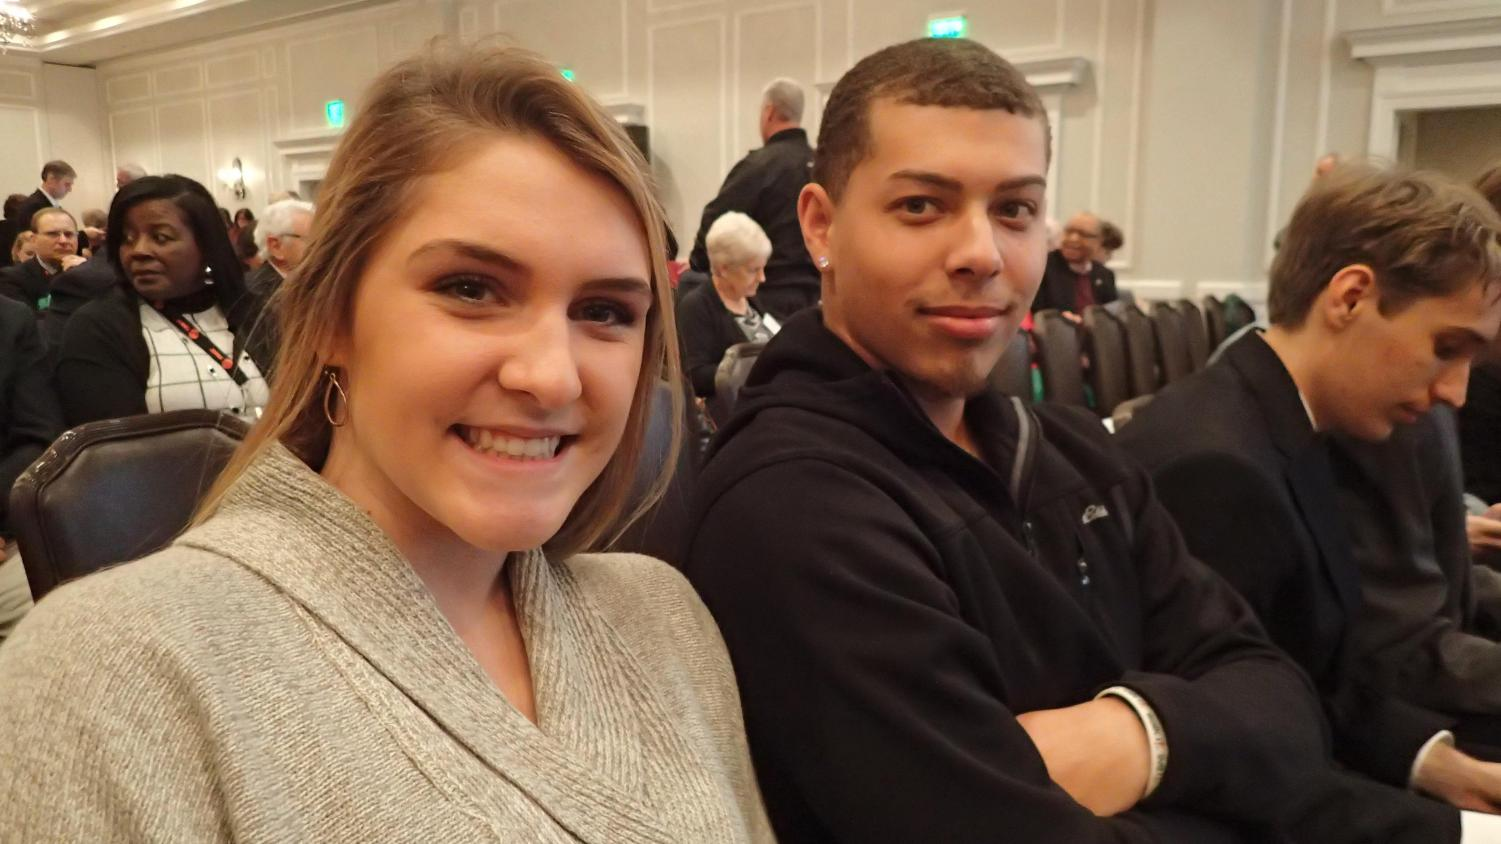 Seniors Katie Morris (left) and Kevin Burruss (right) at the Student Video Contest award ceremony on November 14, 2018 at the VSBA Annual Convention.  Photo Courtesy of David Small.